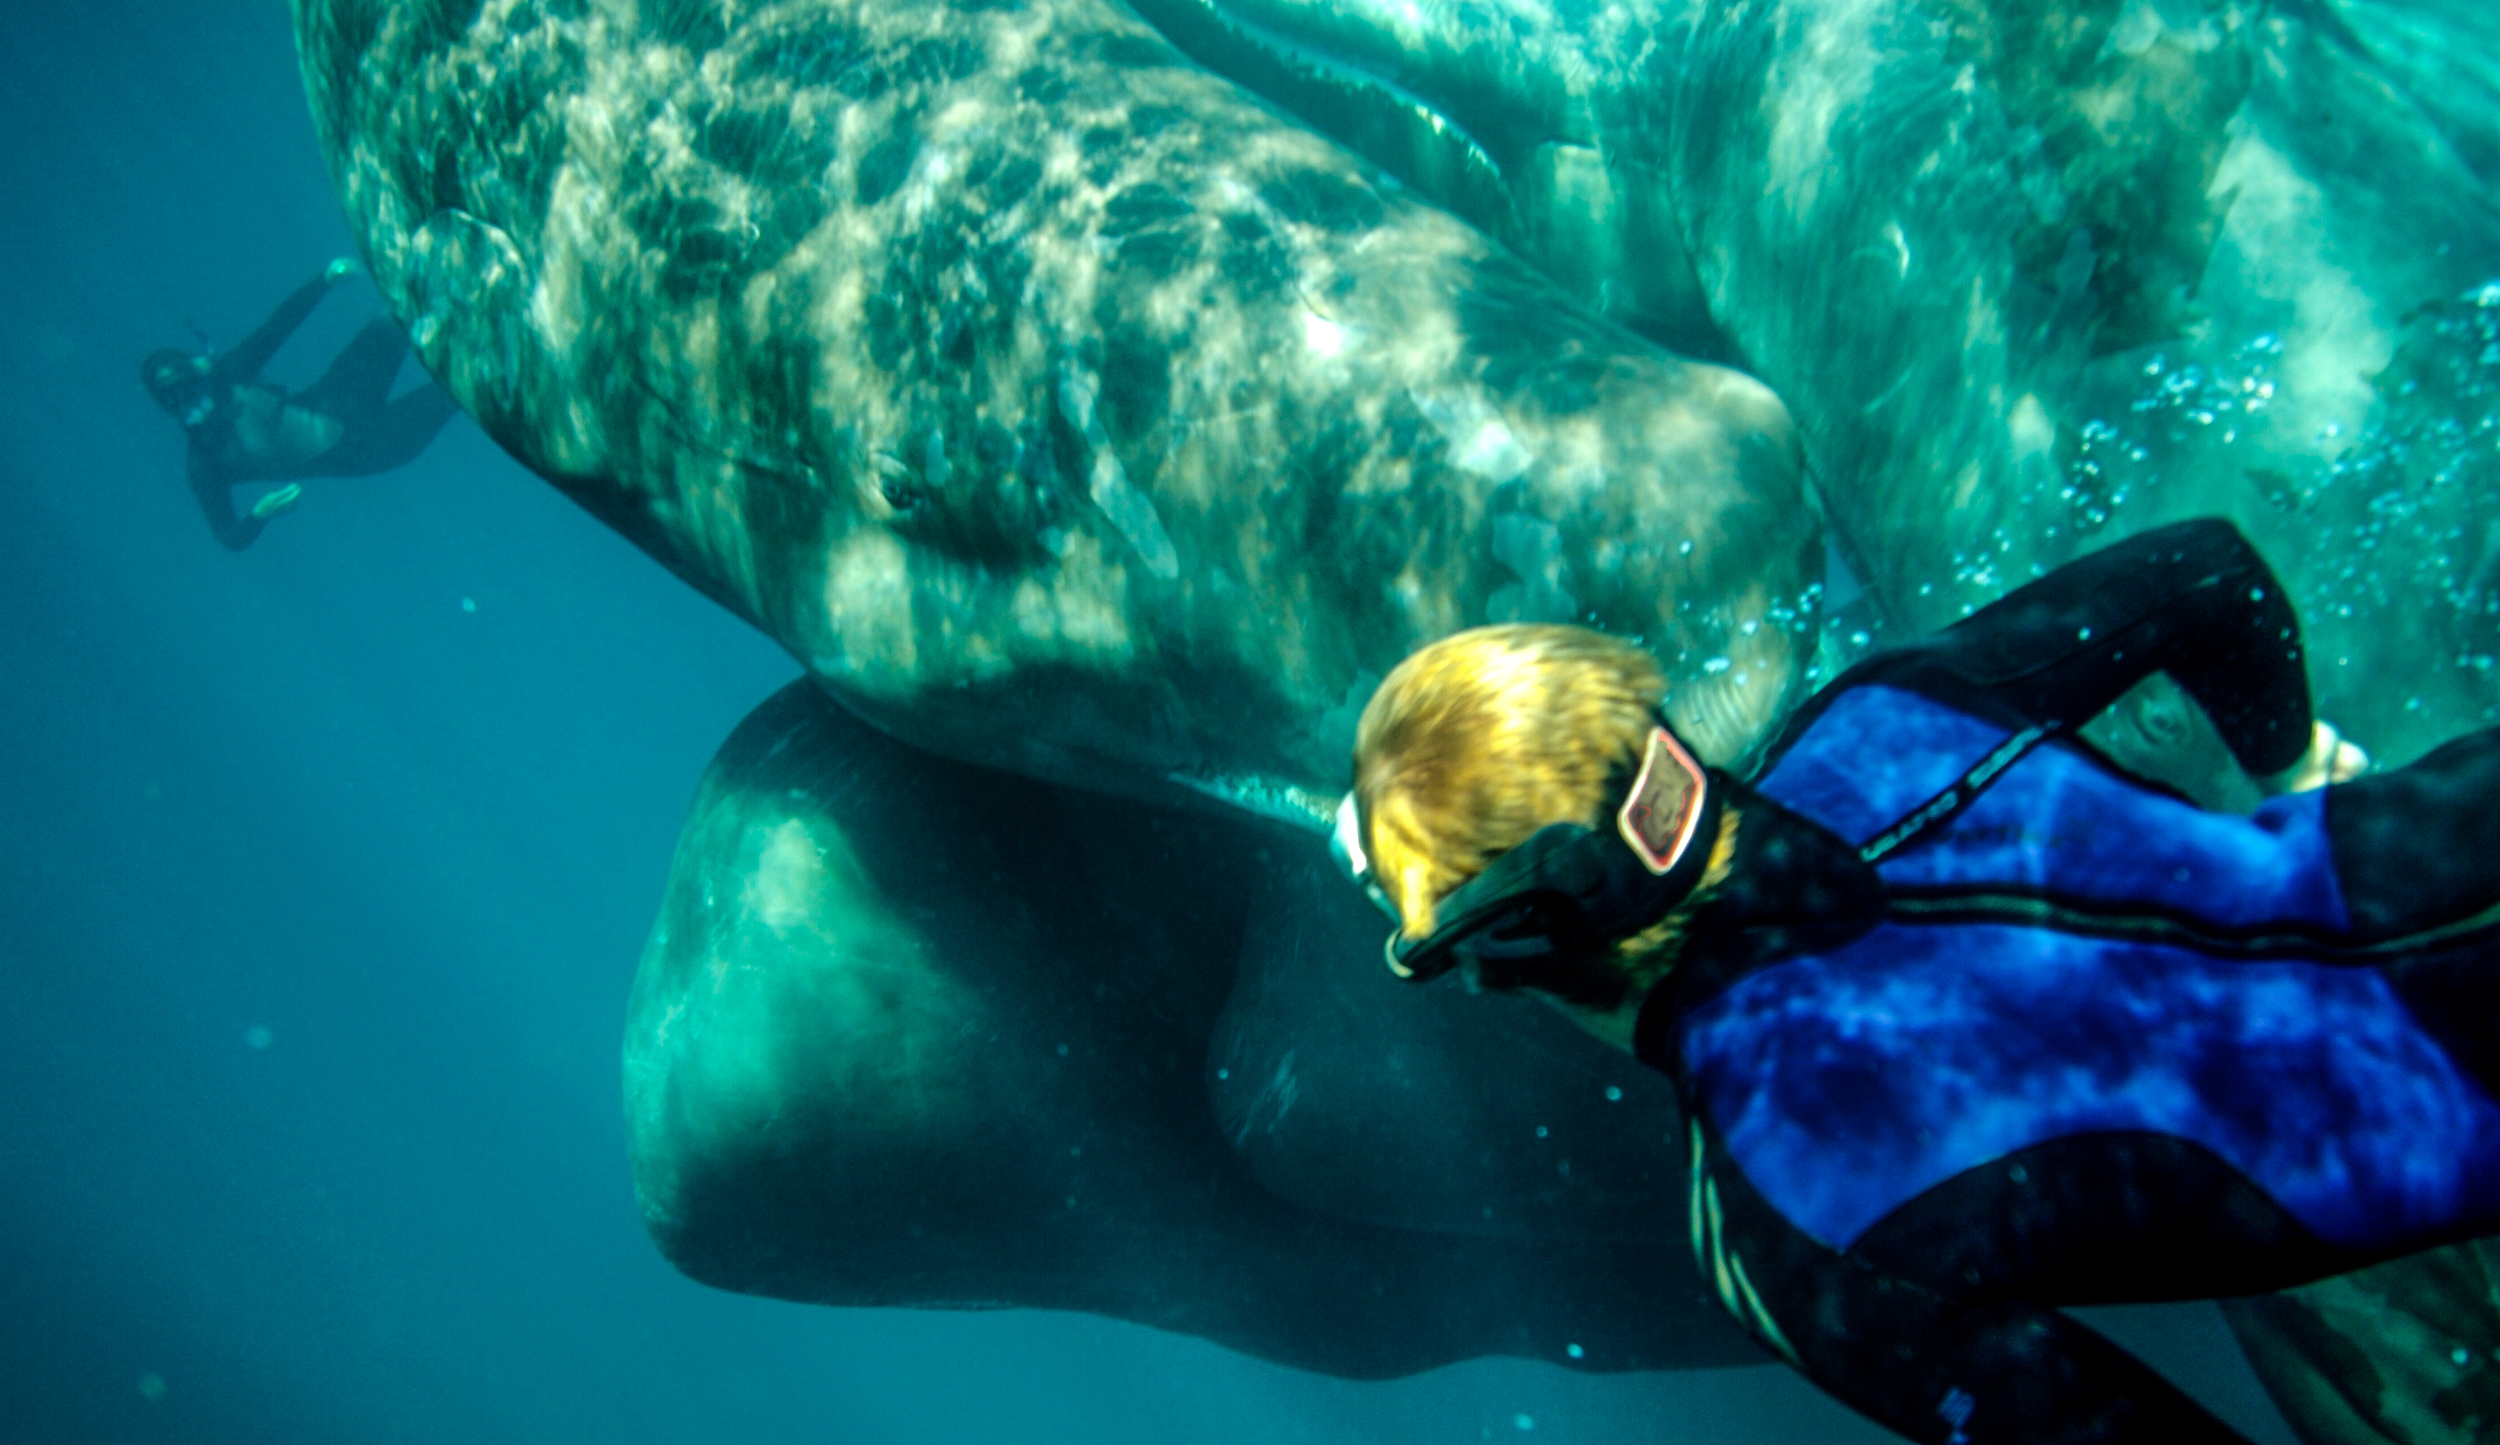 Cousteau and the Sperm Whale